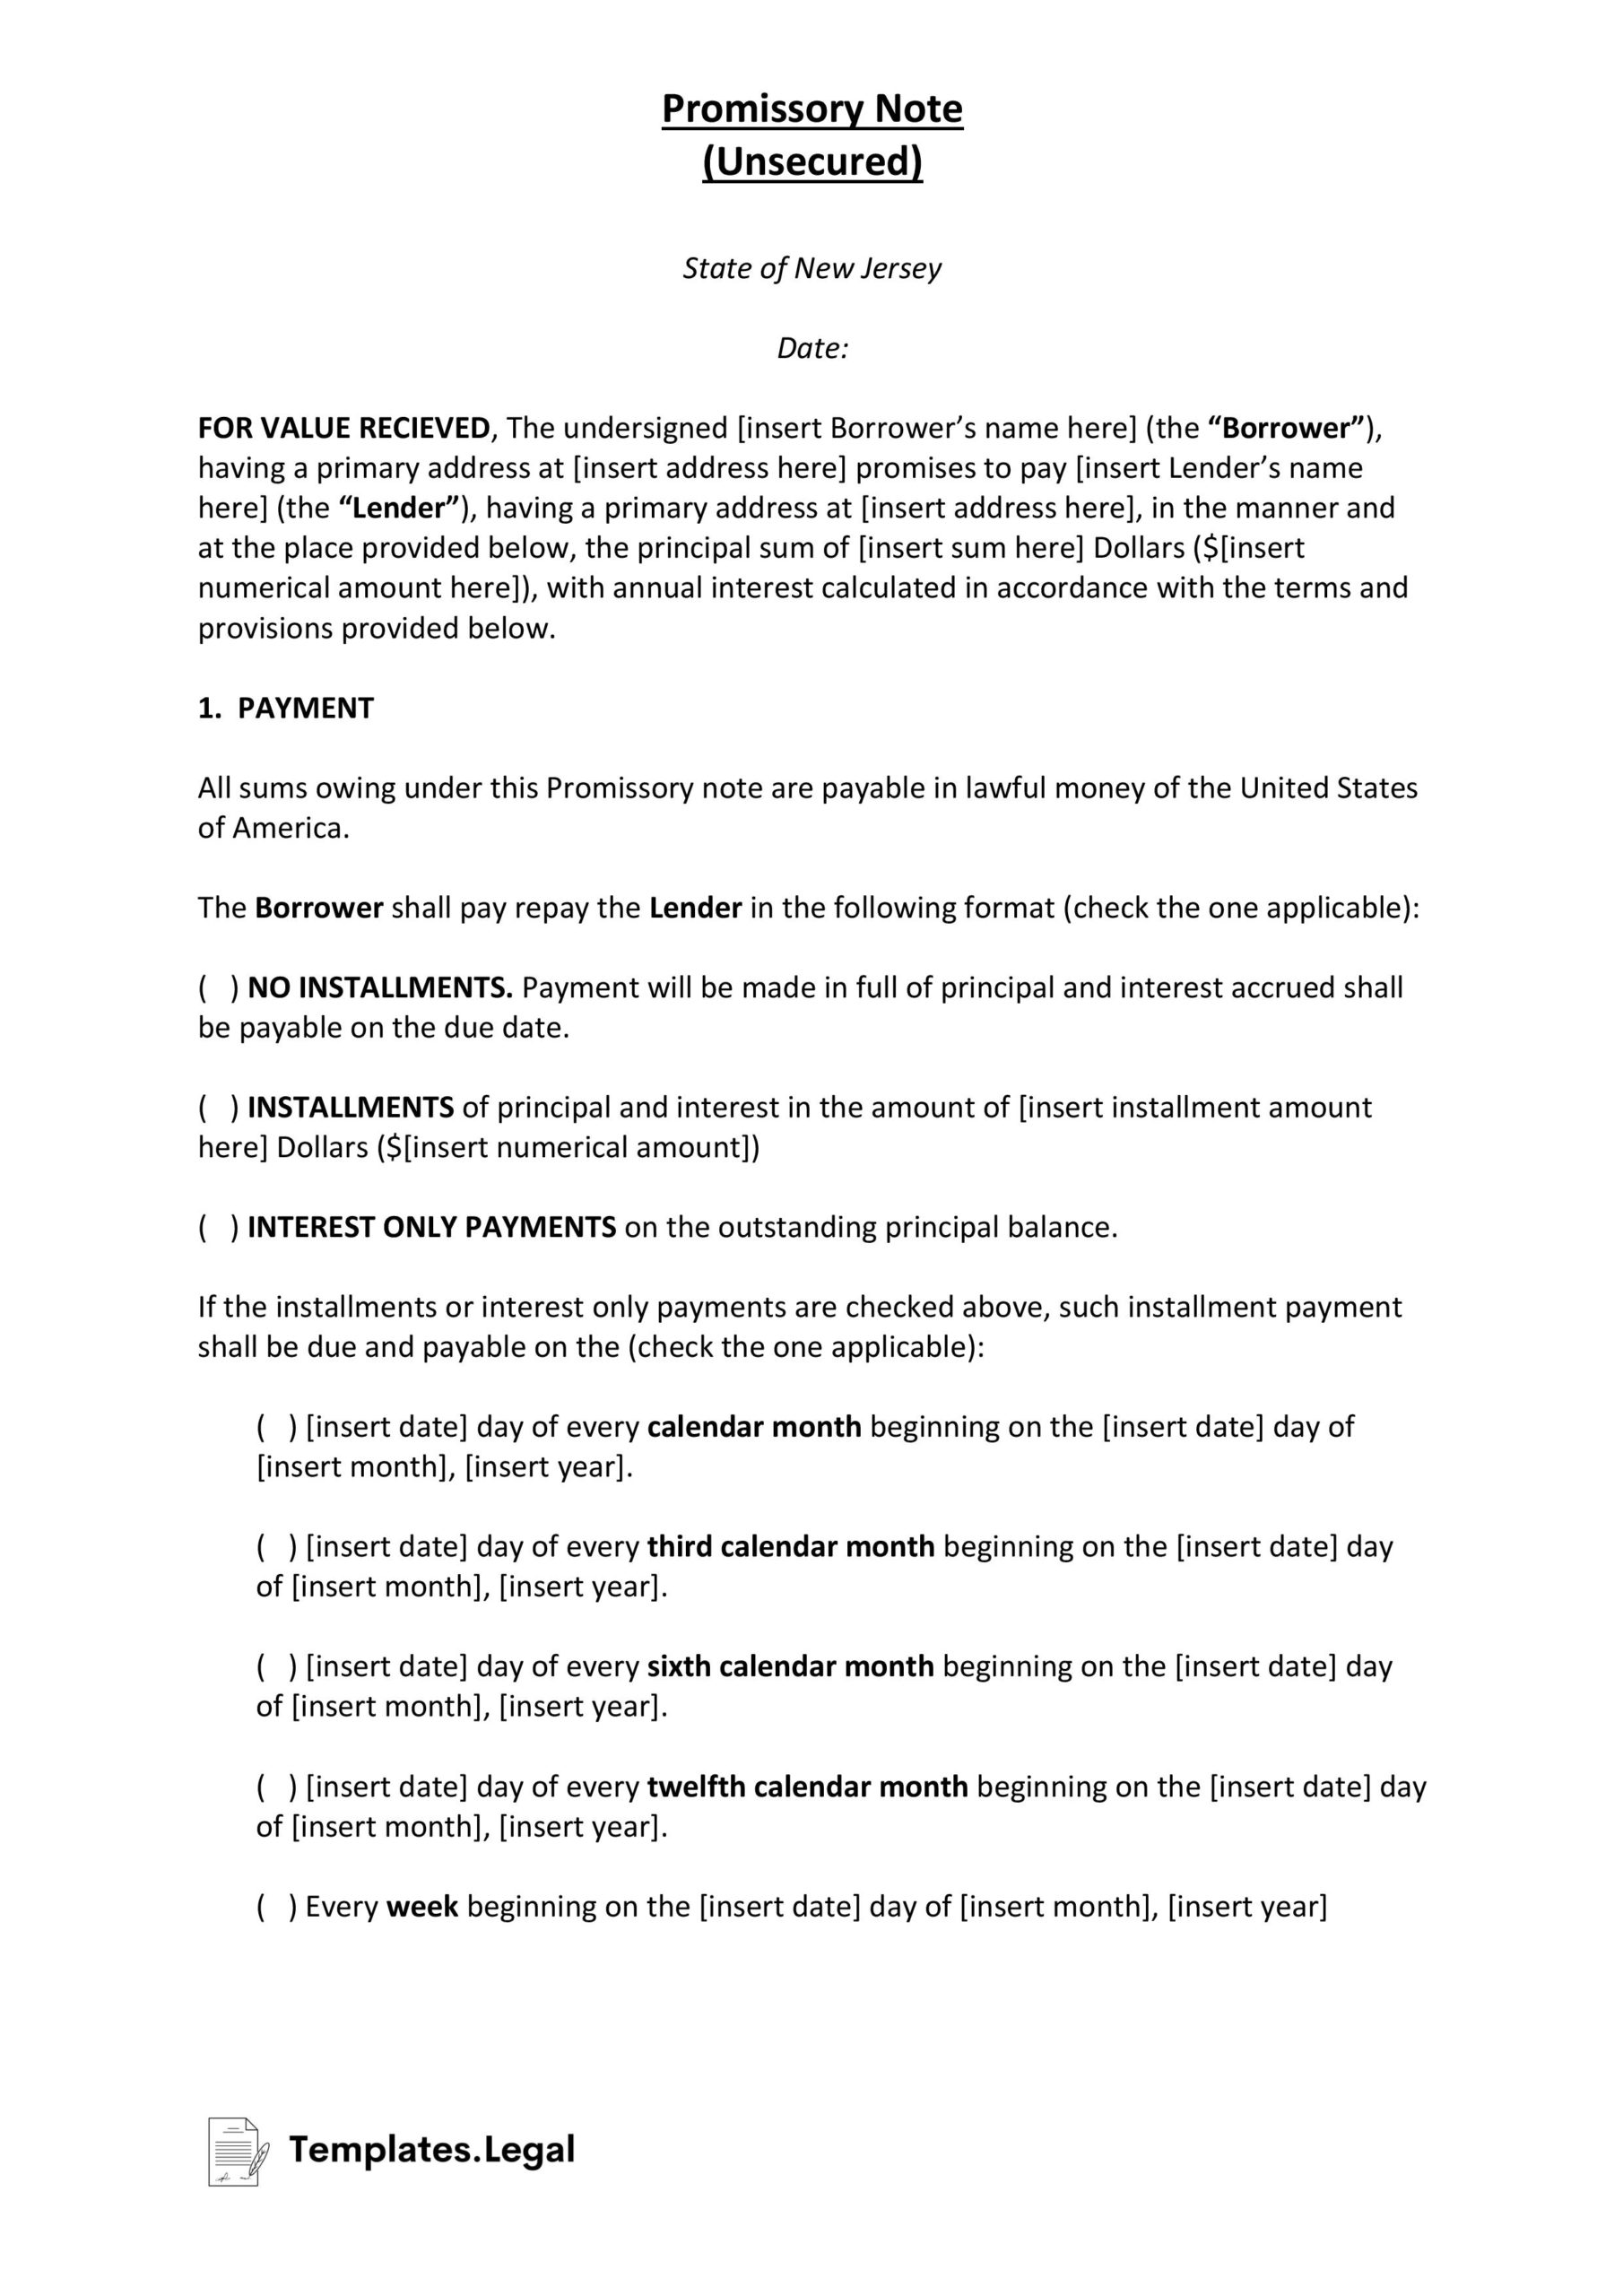 New Jersey Unsecured Promissory Note - Templates.Legal